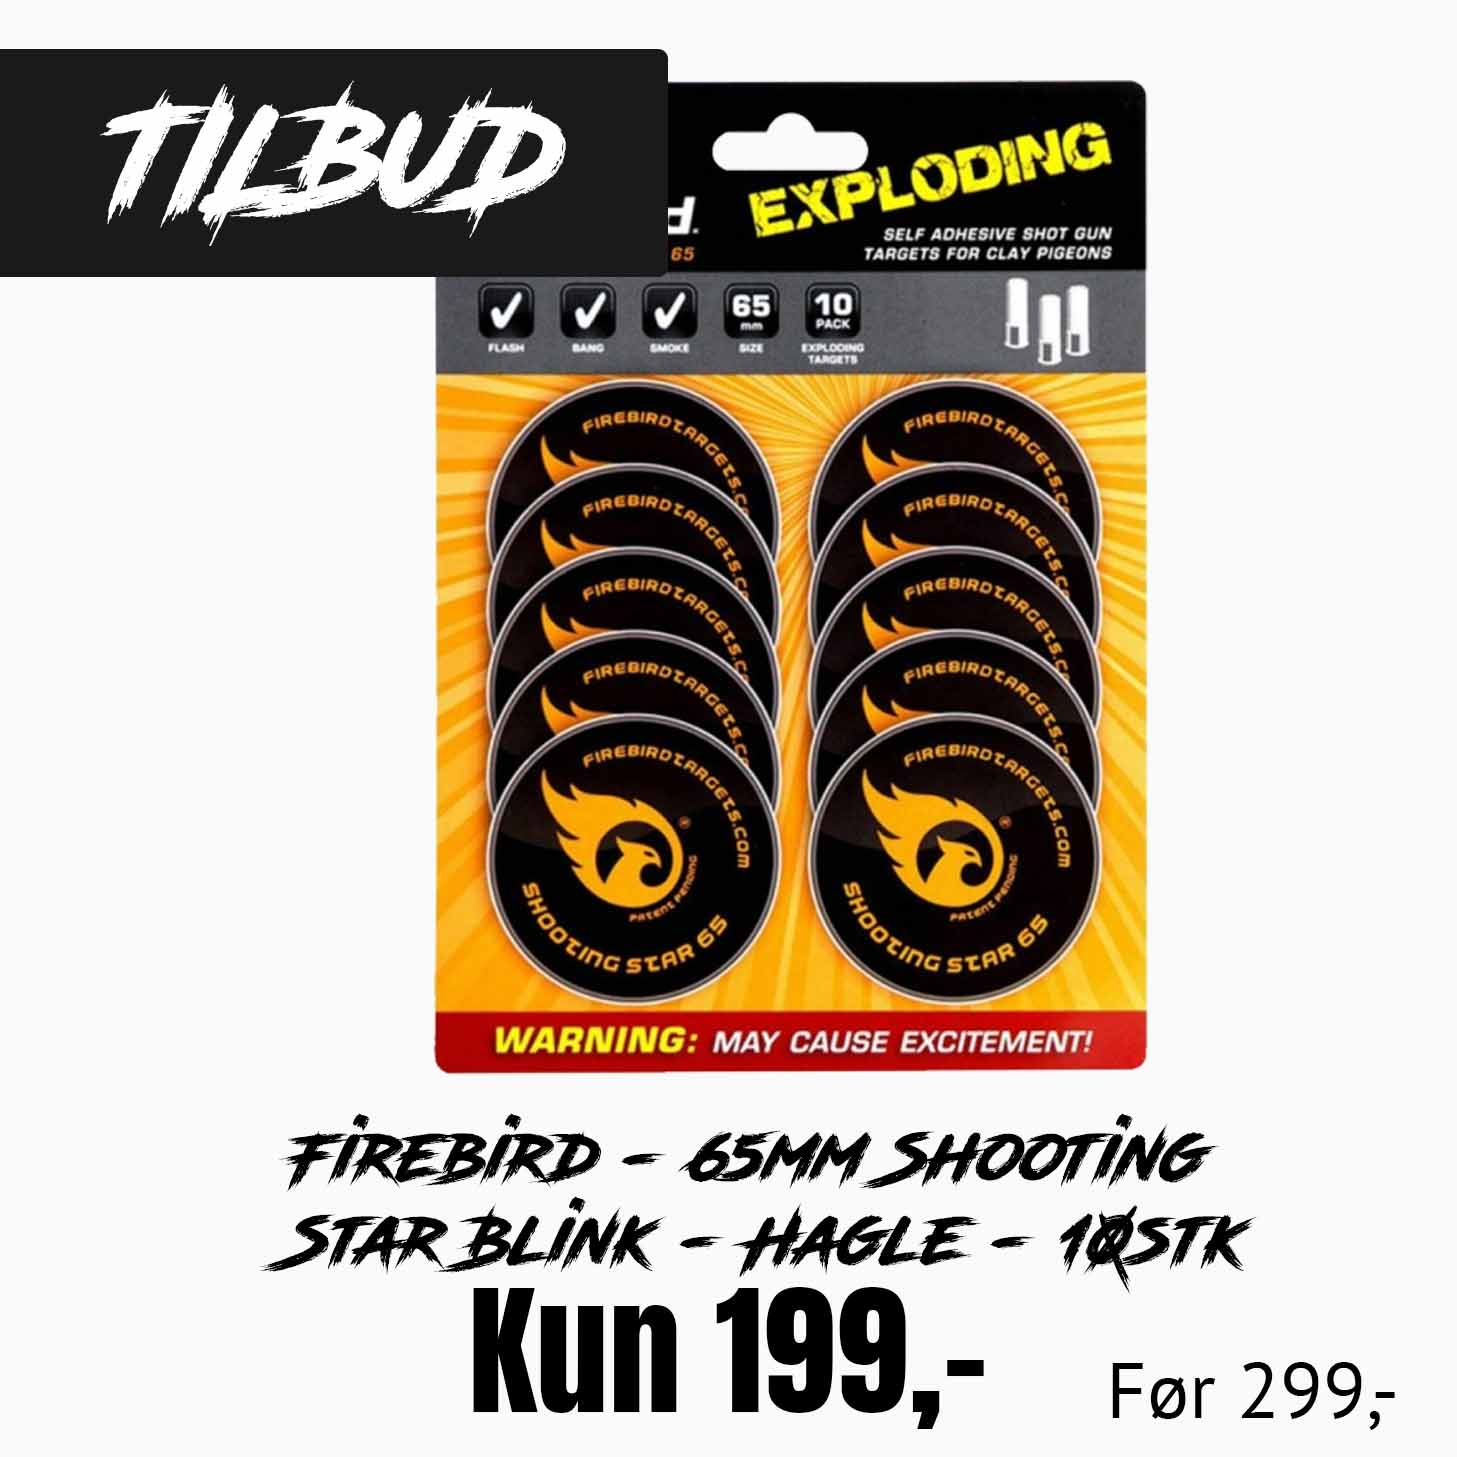 Firebird - 65mm Shooting Star Blink - Hagle - 10stk